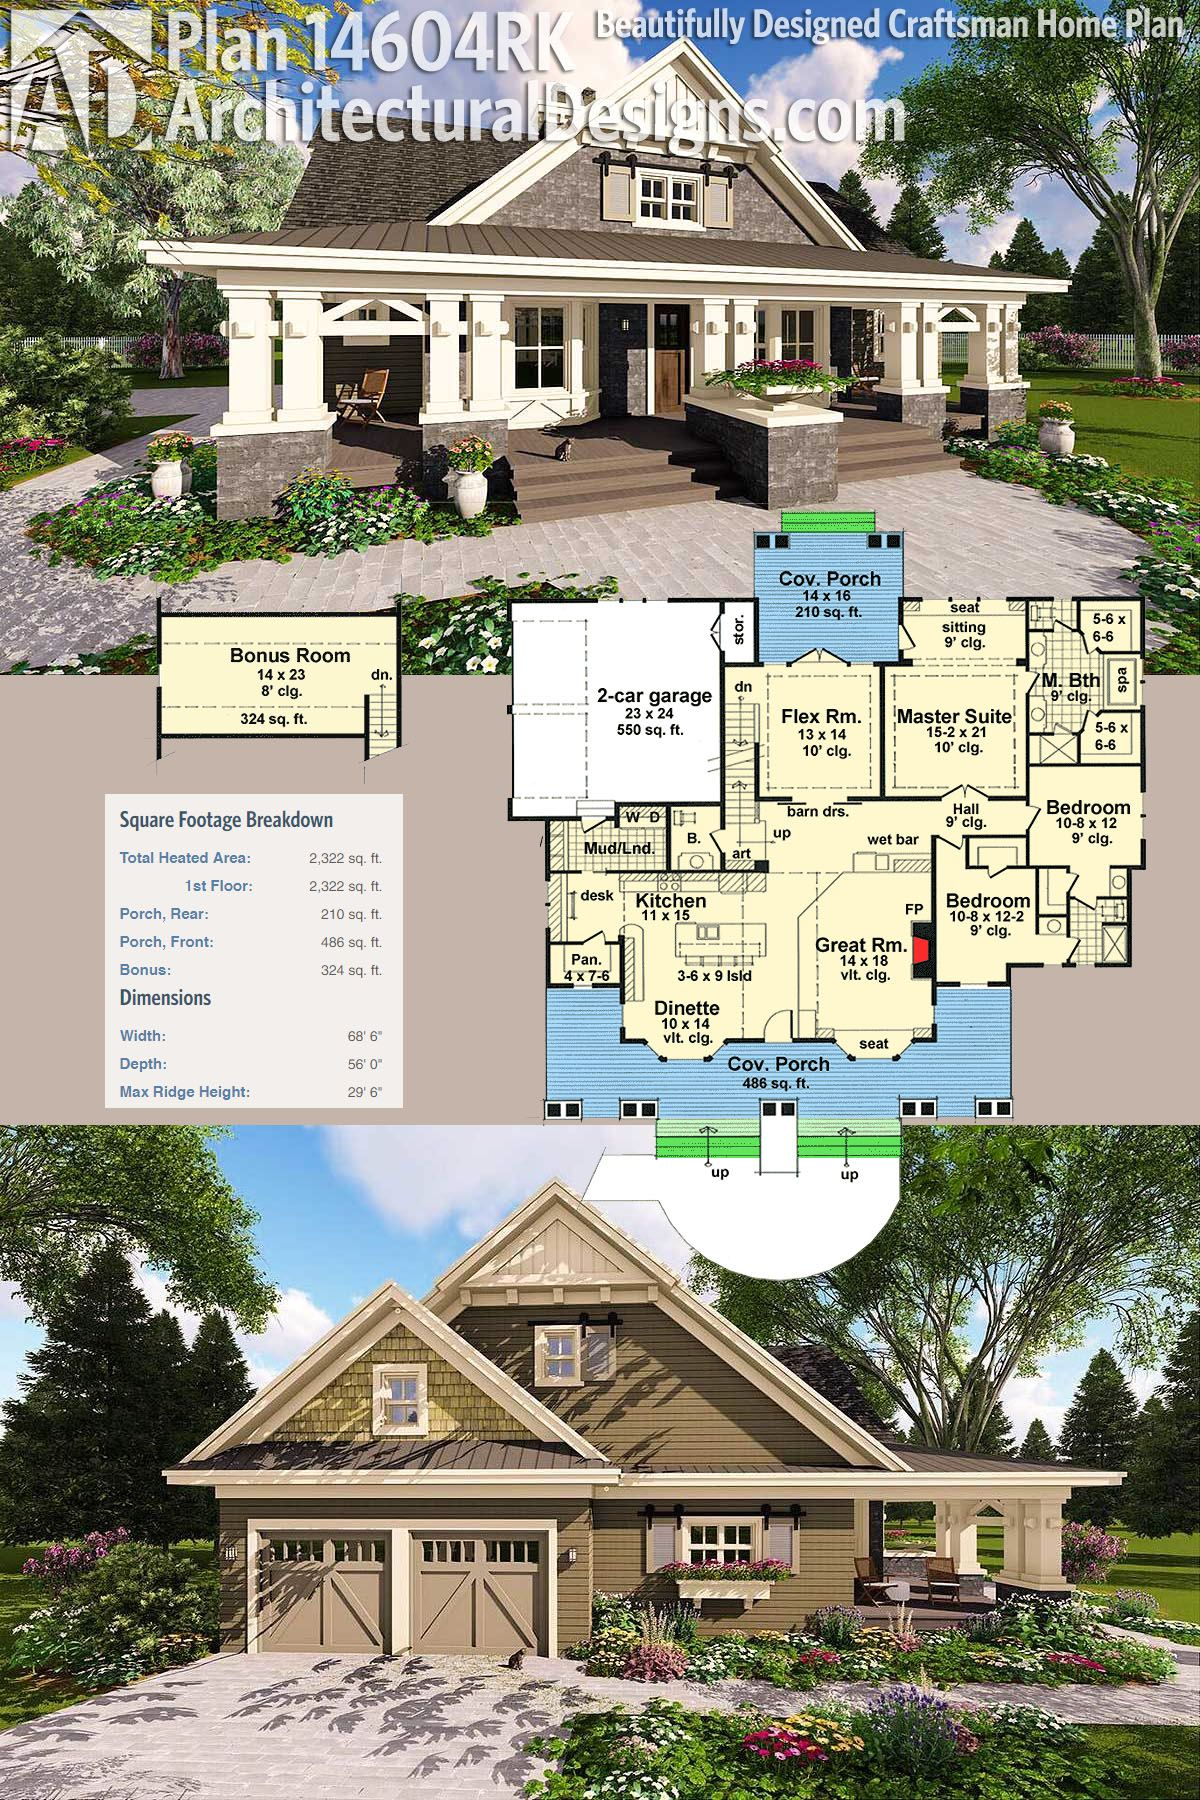 Architectural Designs Craftsman House Plan 14604RK Lottery